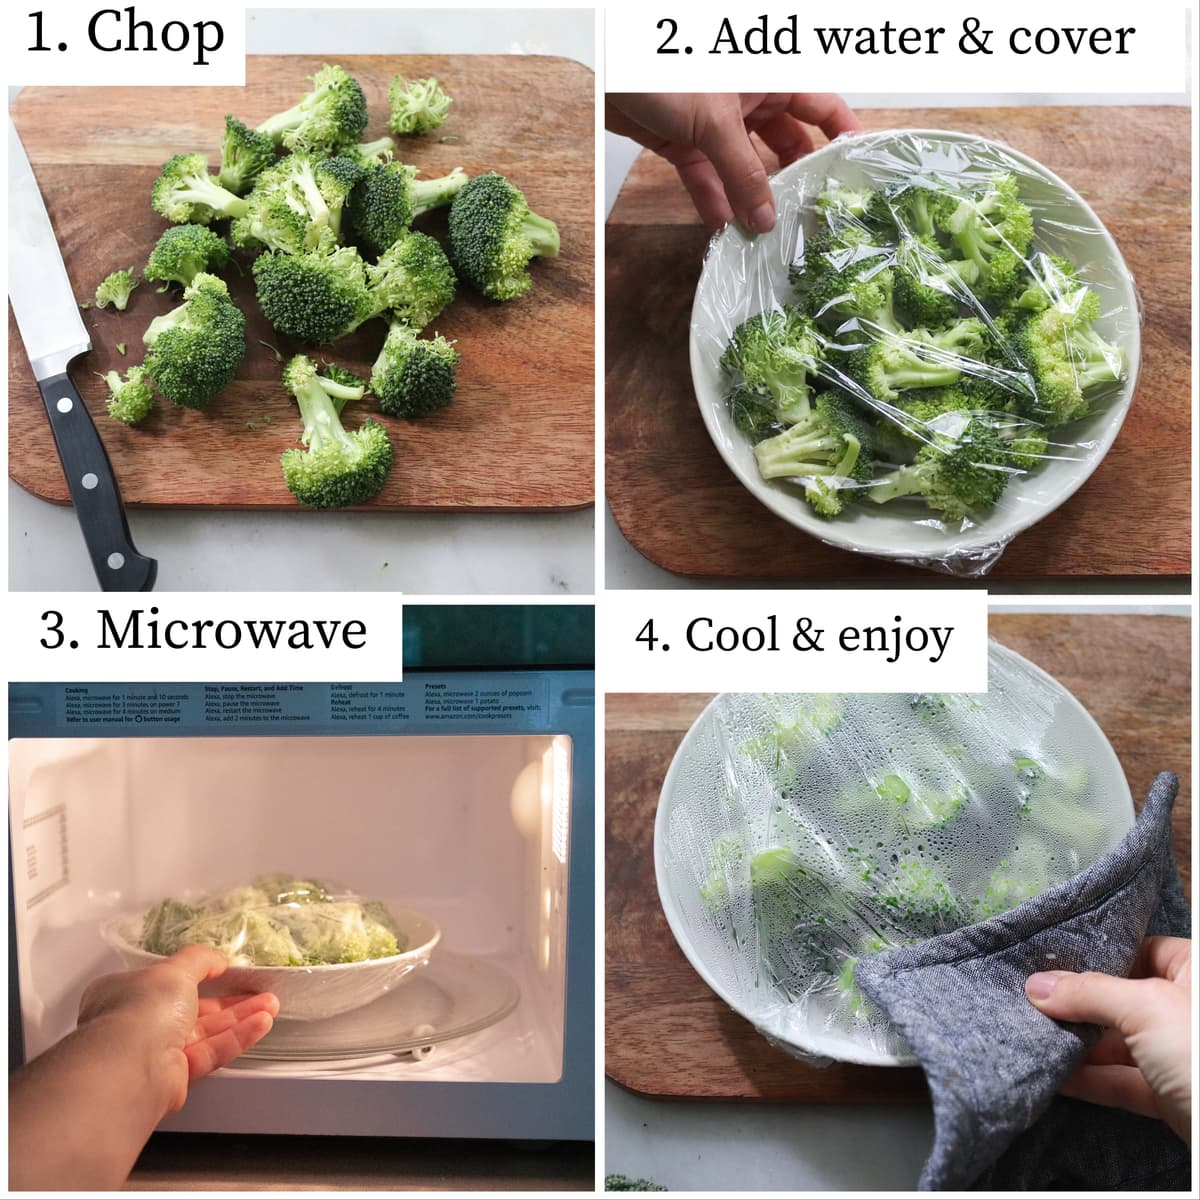 Step by step process collage showing the broccoli chopped, then added to a bowl and covered, then in the microwave, then cooked.